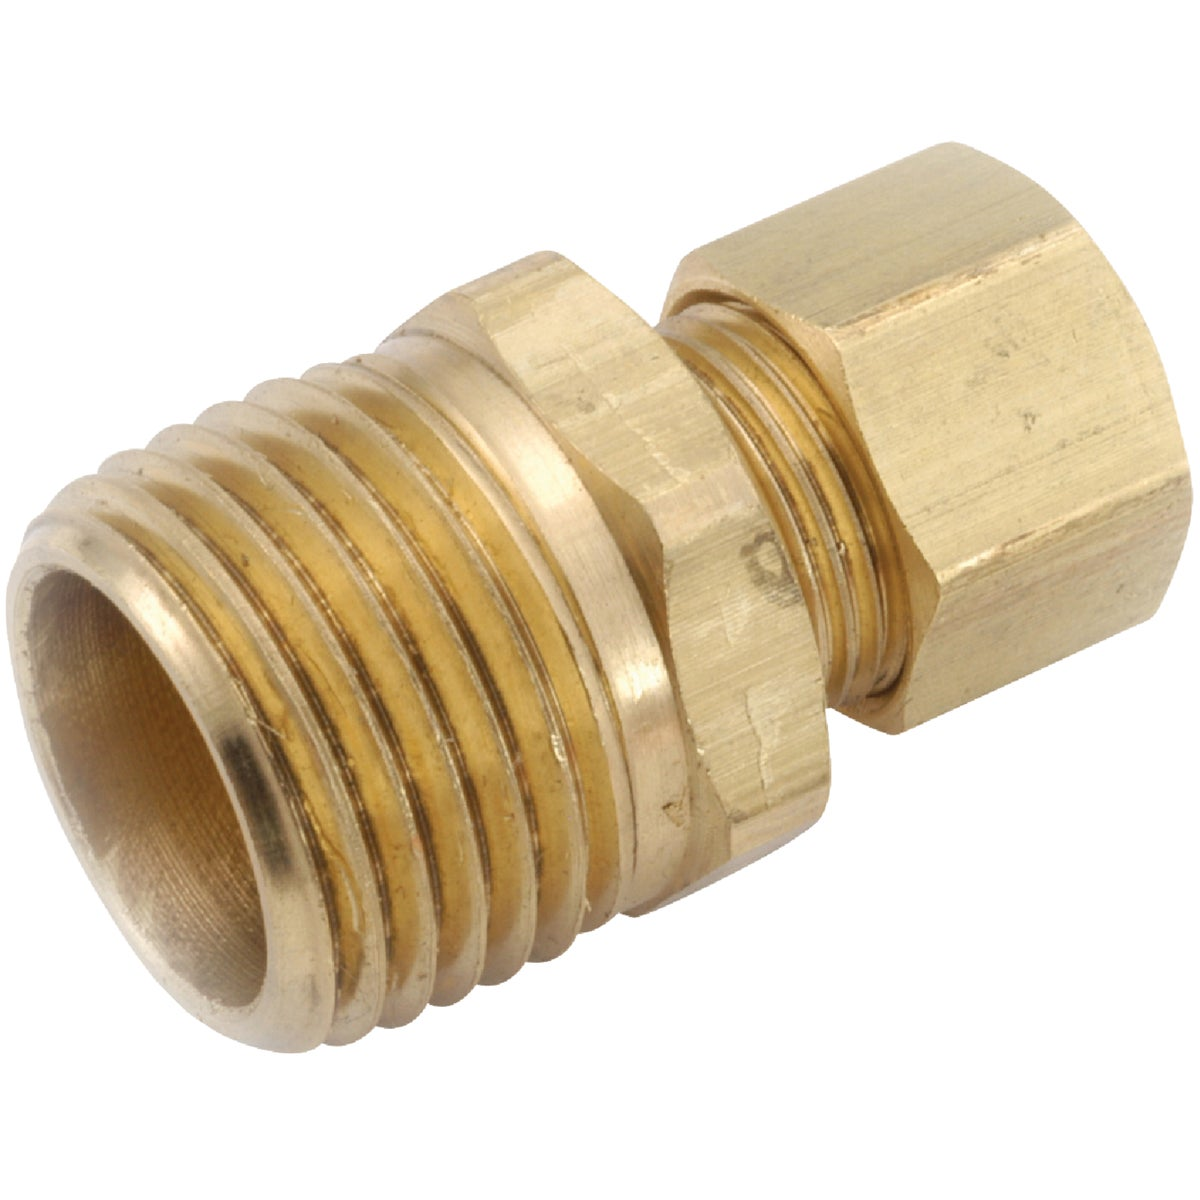 1/4X1/8 MALE CONNECTOR - 750068-0402 by Anderson Metals Corp